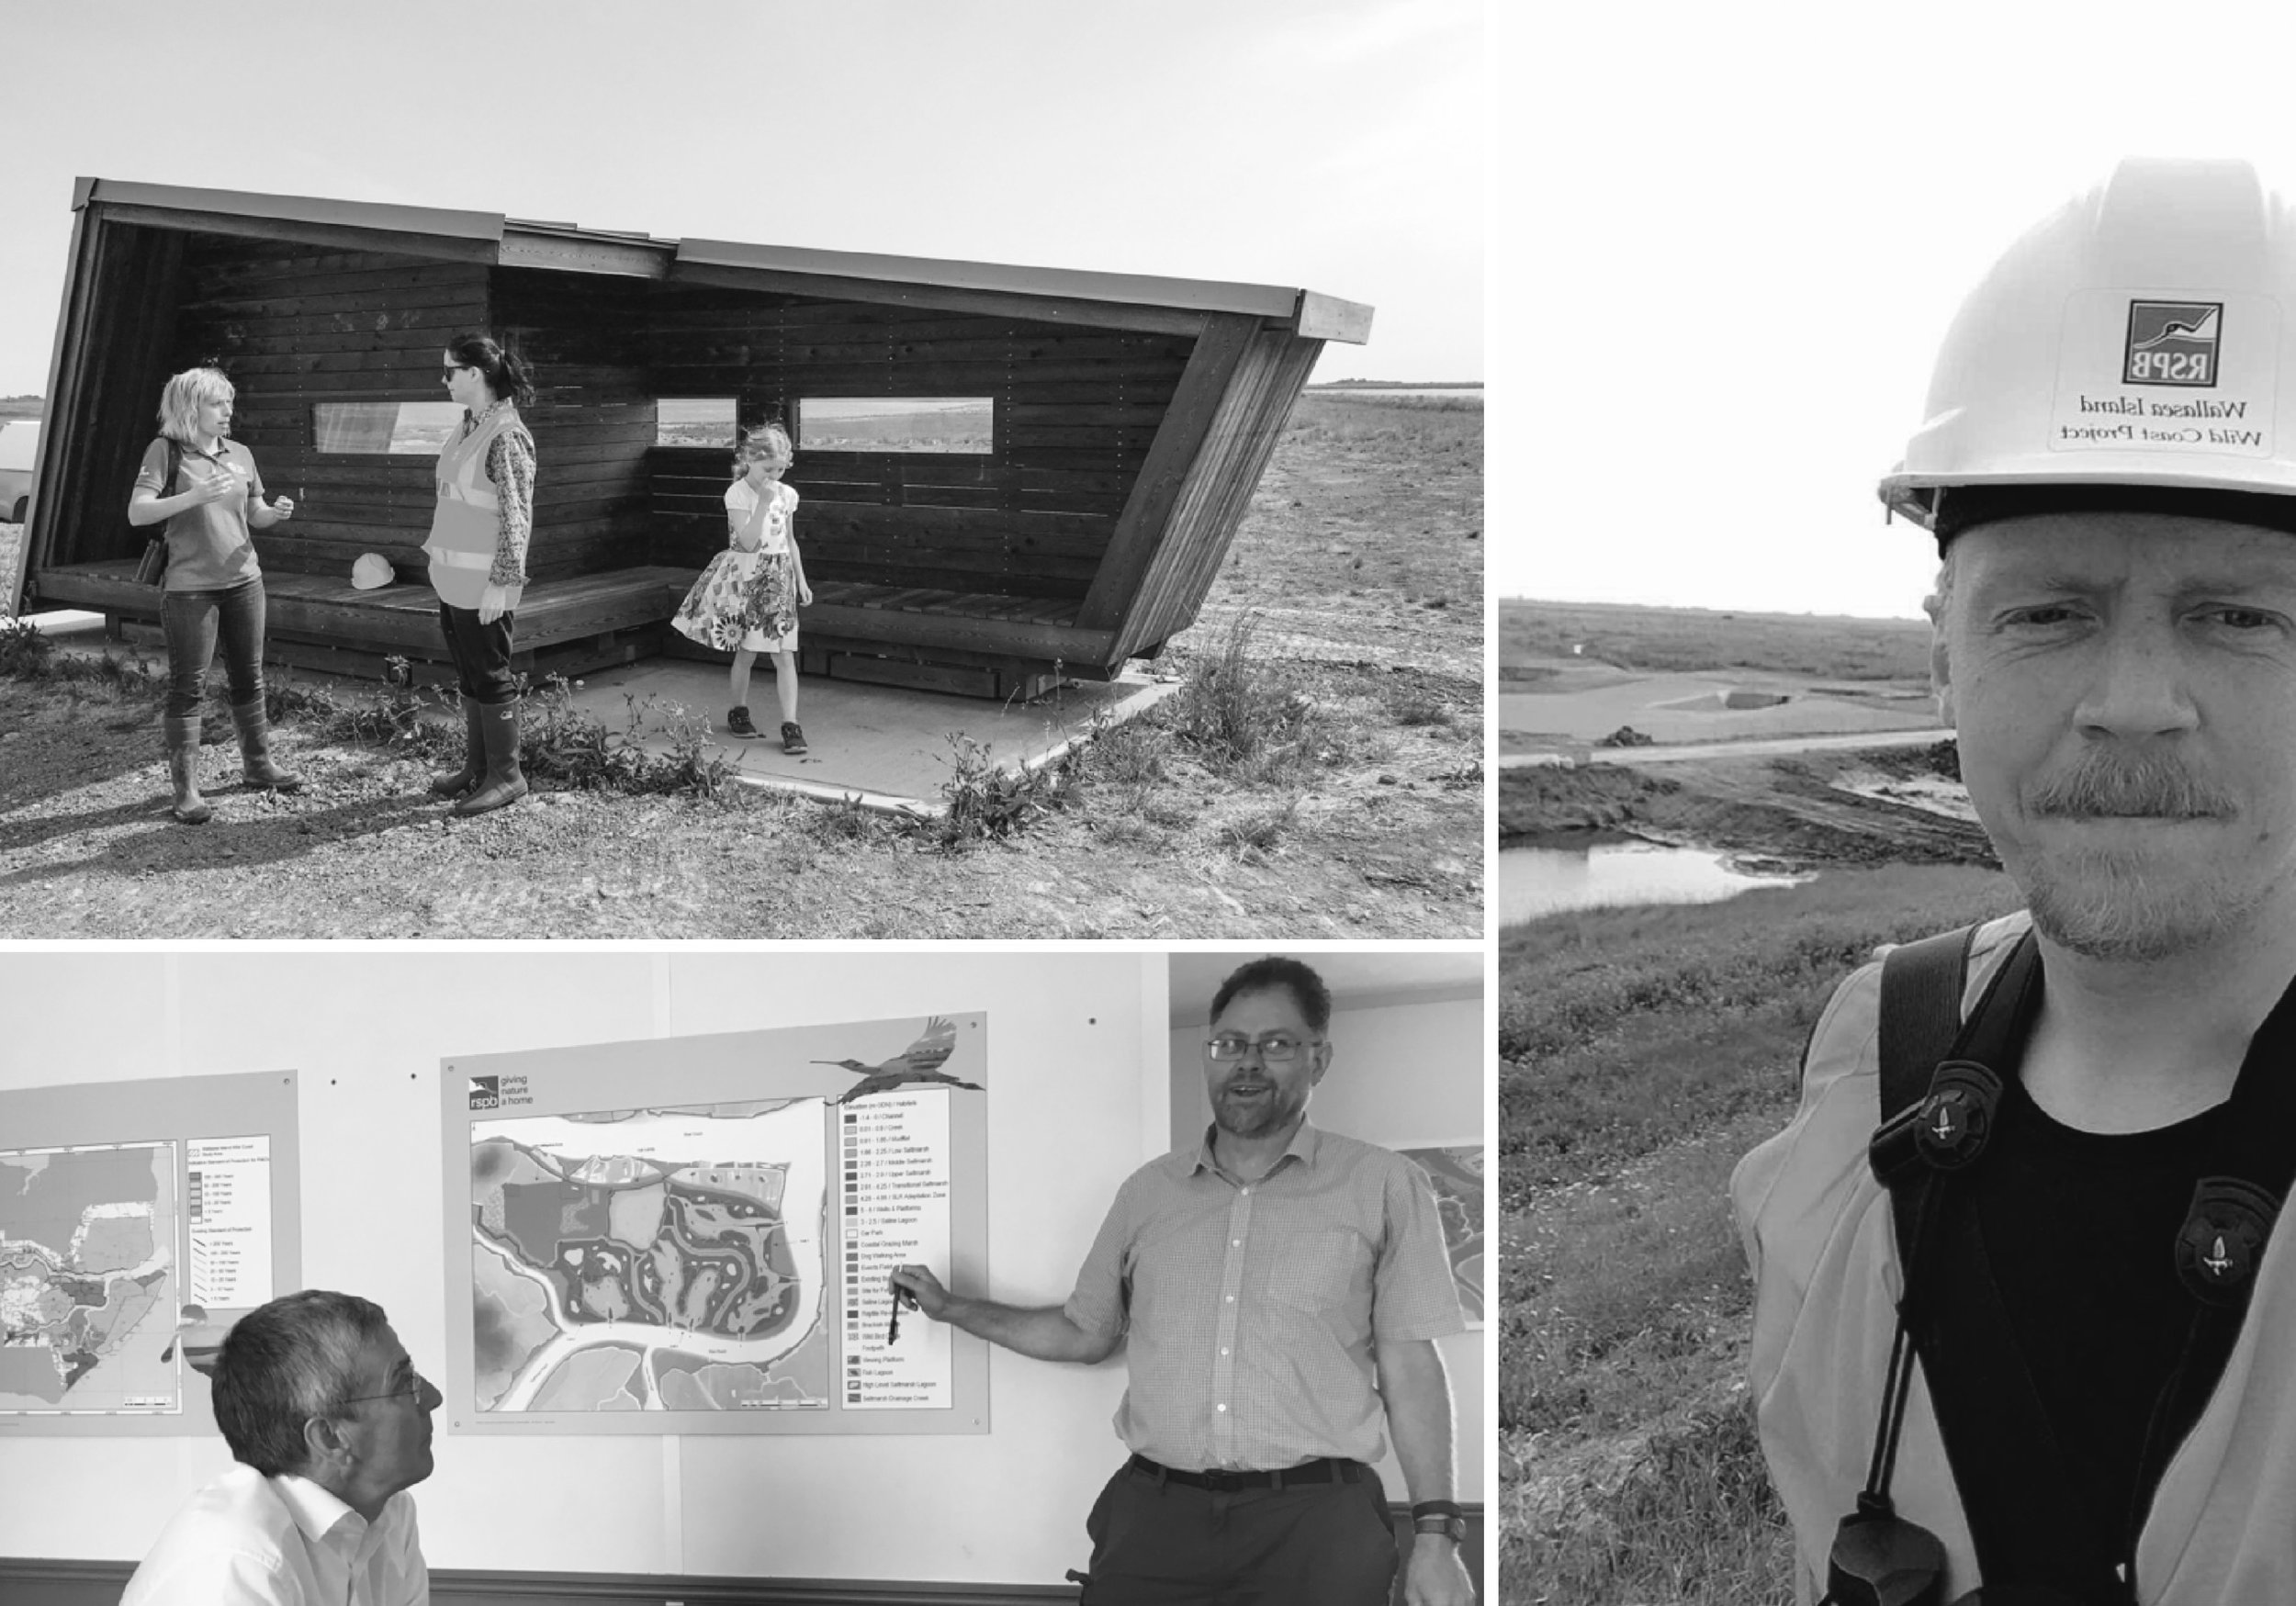 Project meetings and site visits with the RSPB Wallasea team